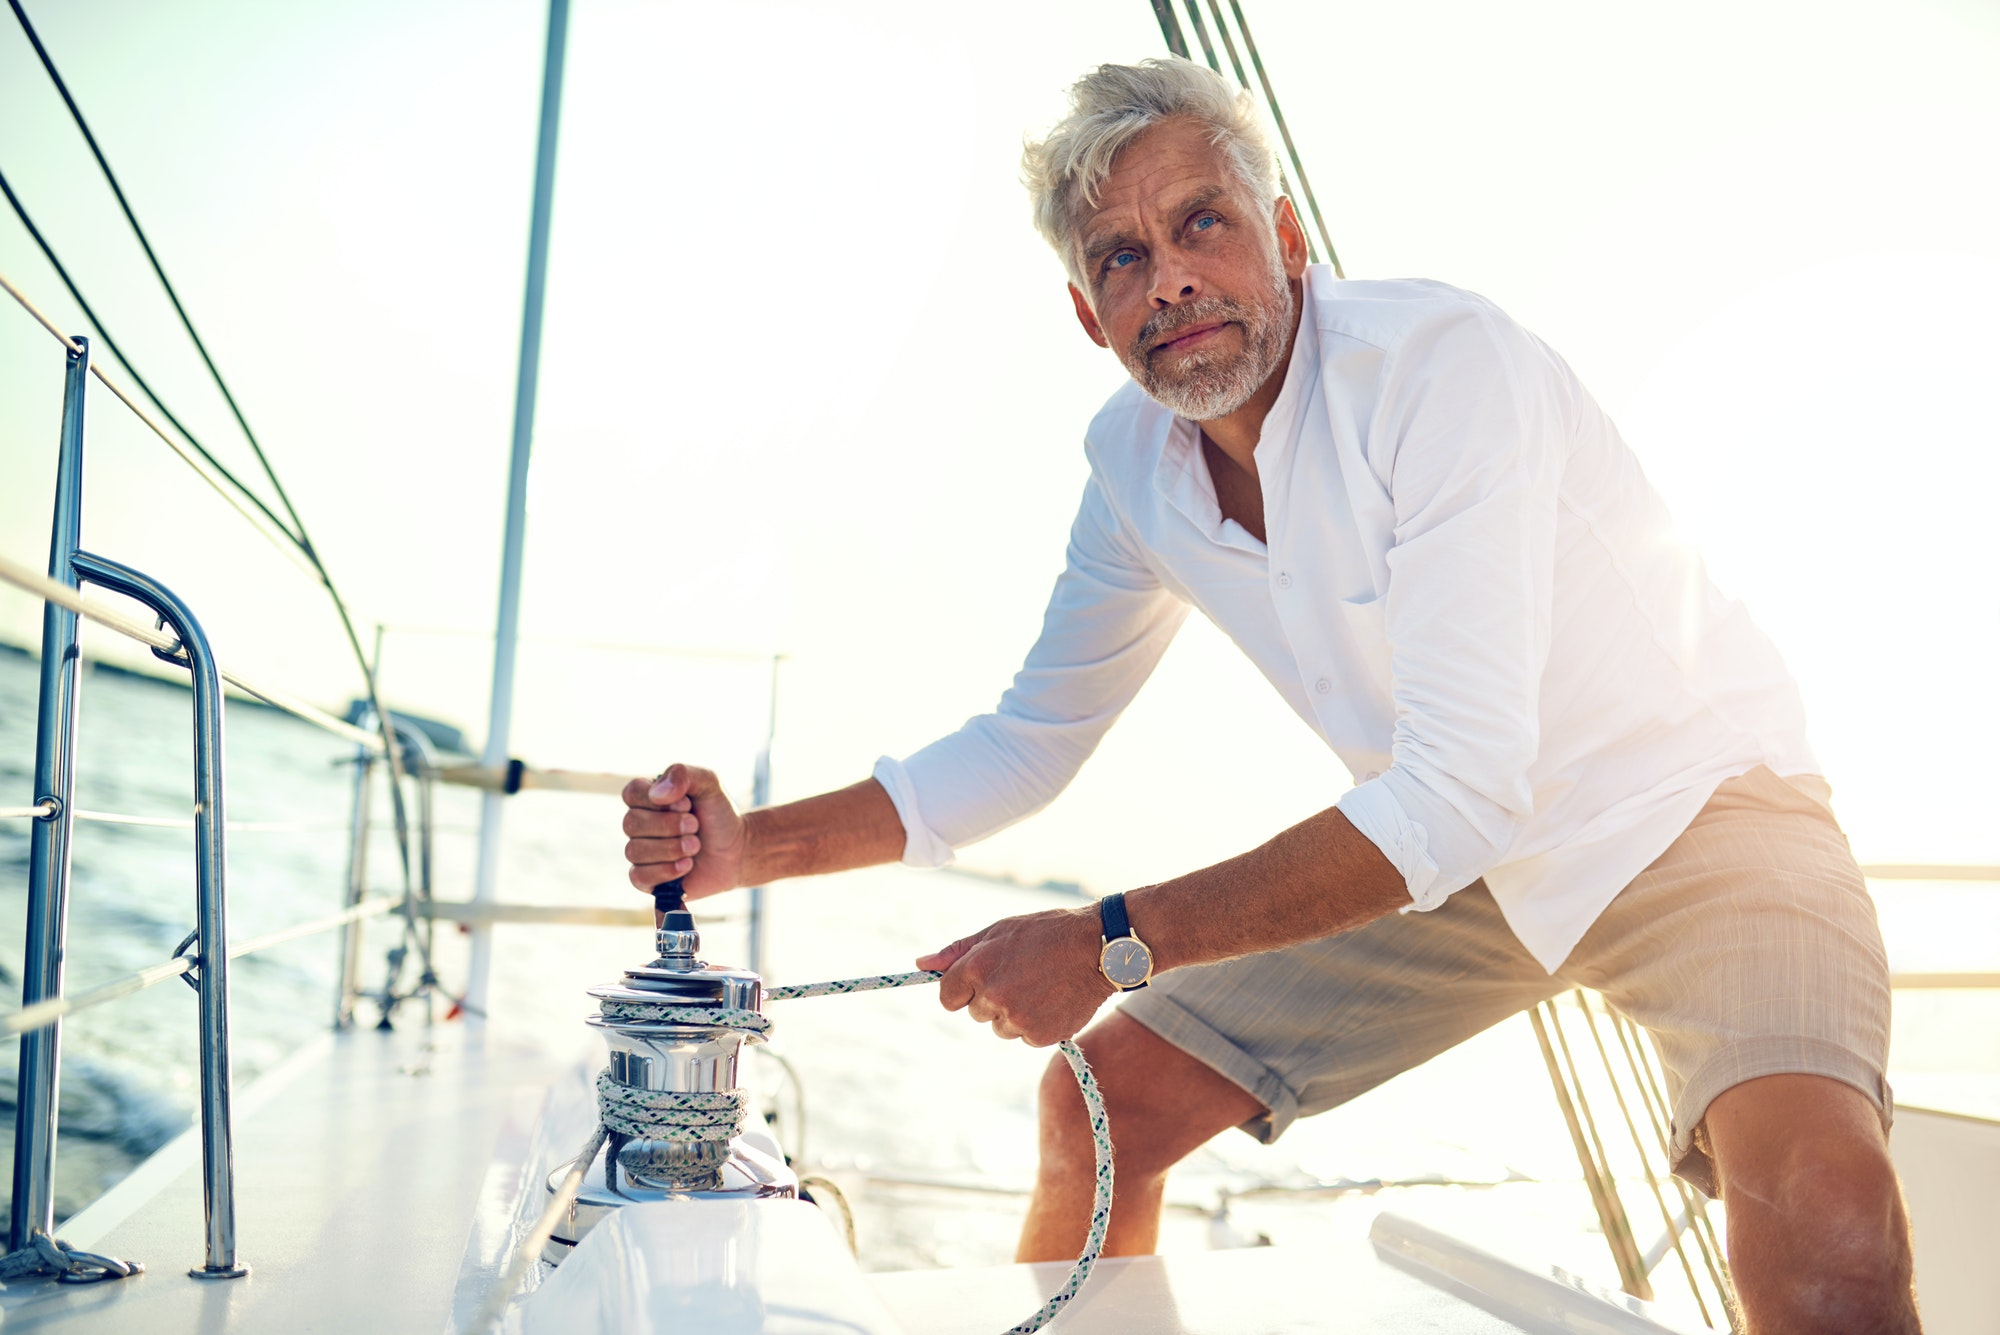 Mature man using a winch while out sailing